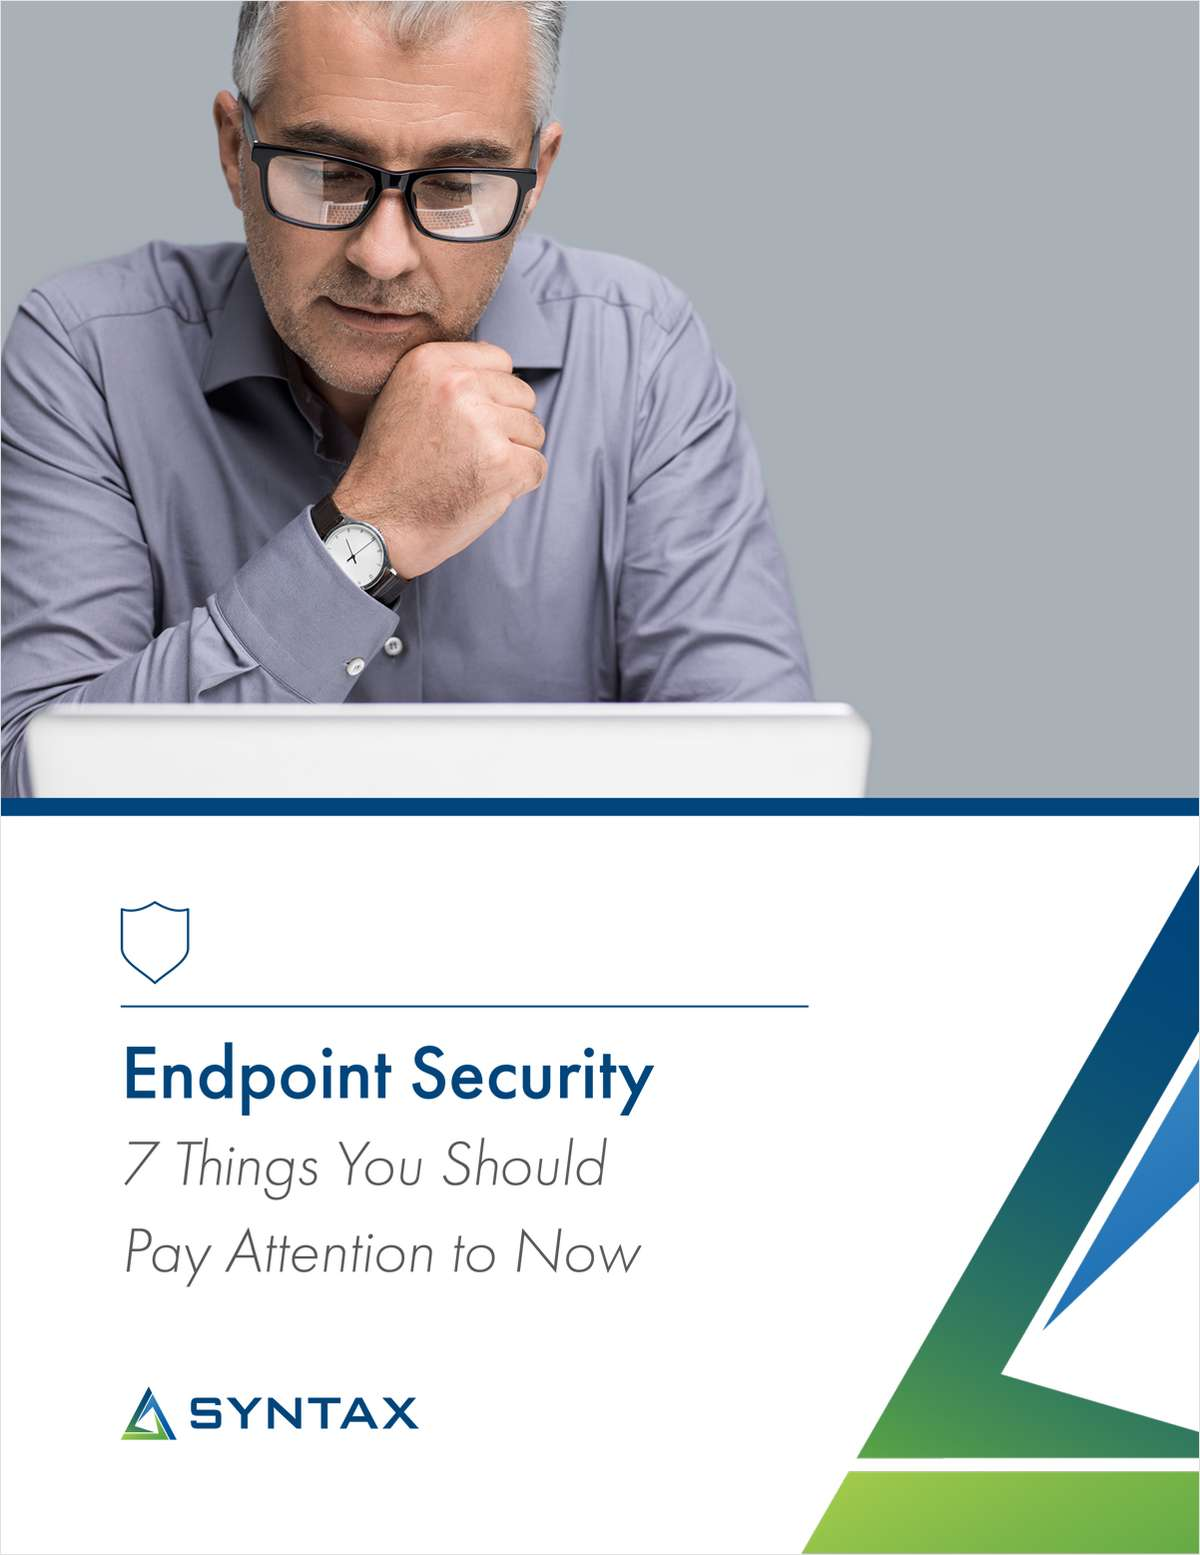 Endpoint Security: 7 Things You Should Pay Attention to Now